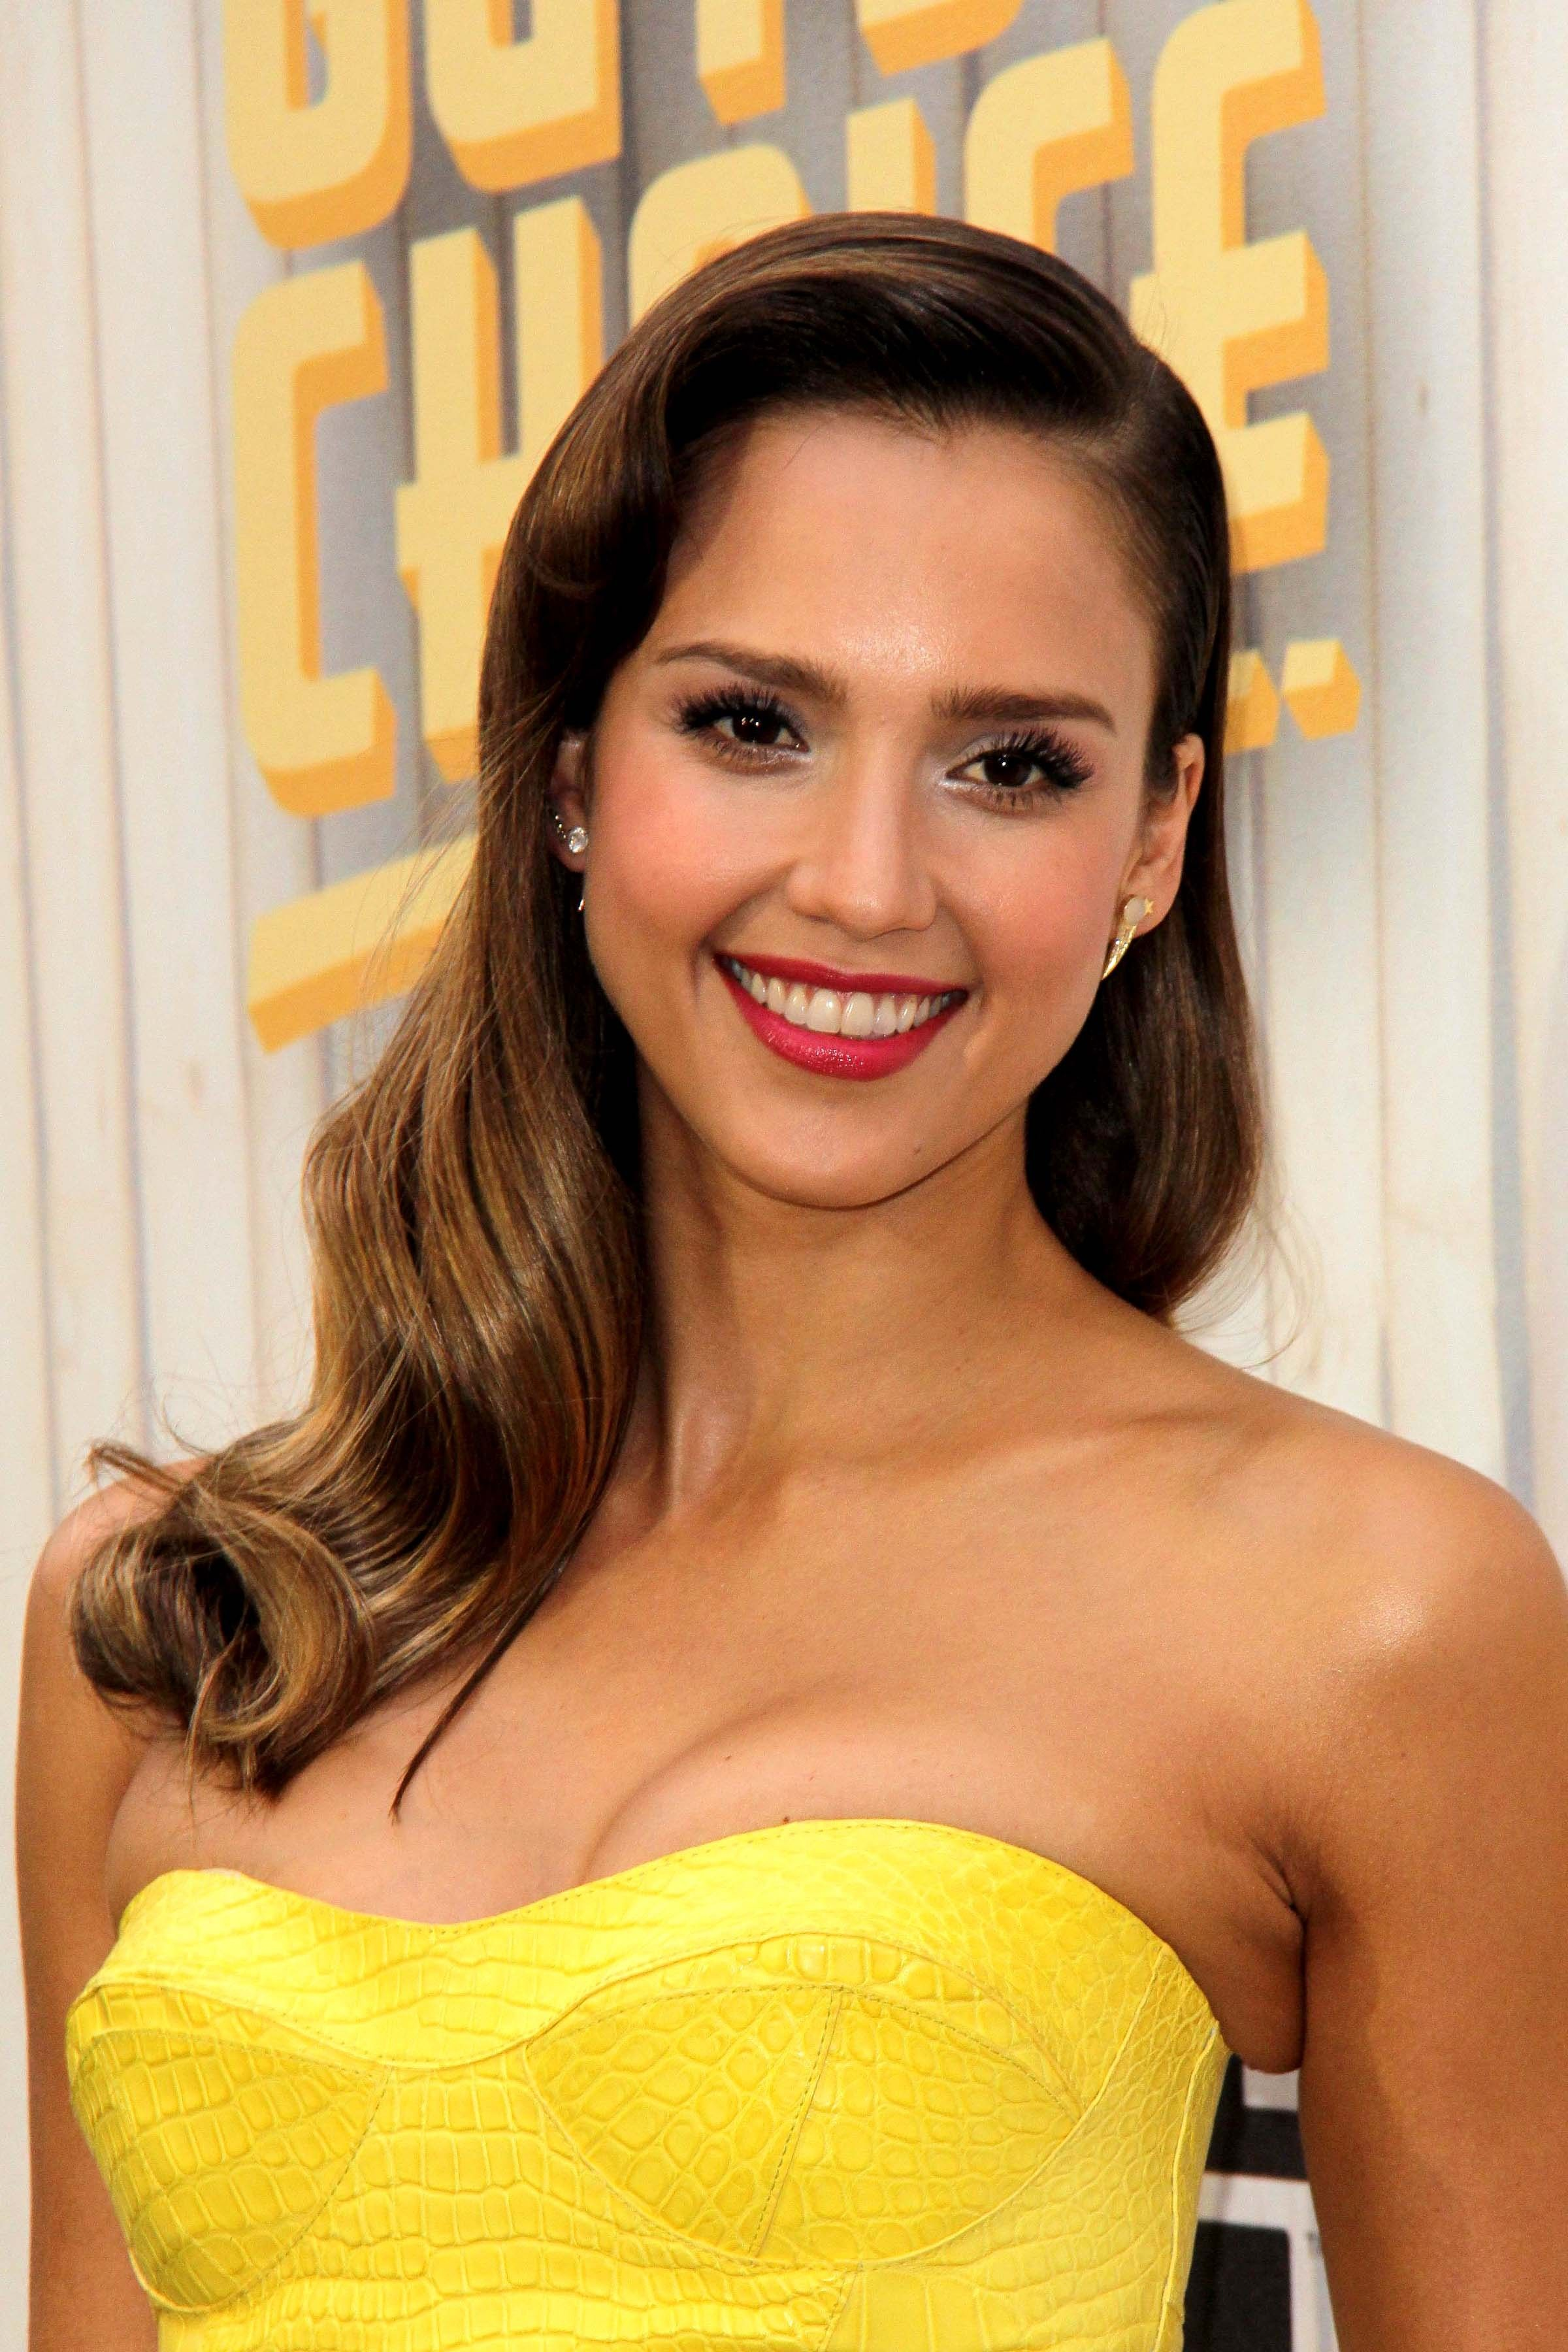 15. Jessica Alba – Wants People To Get Past Her Hotness